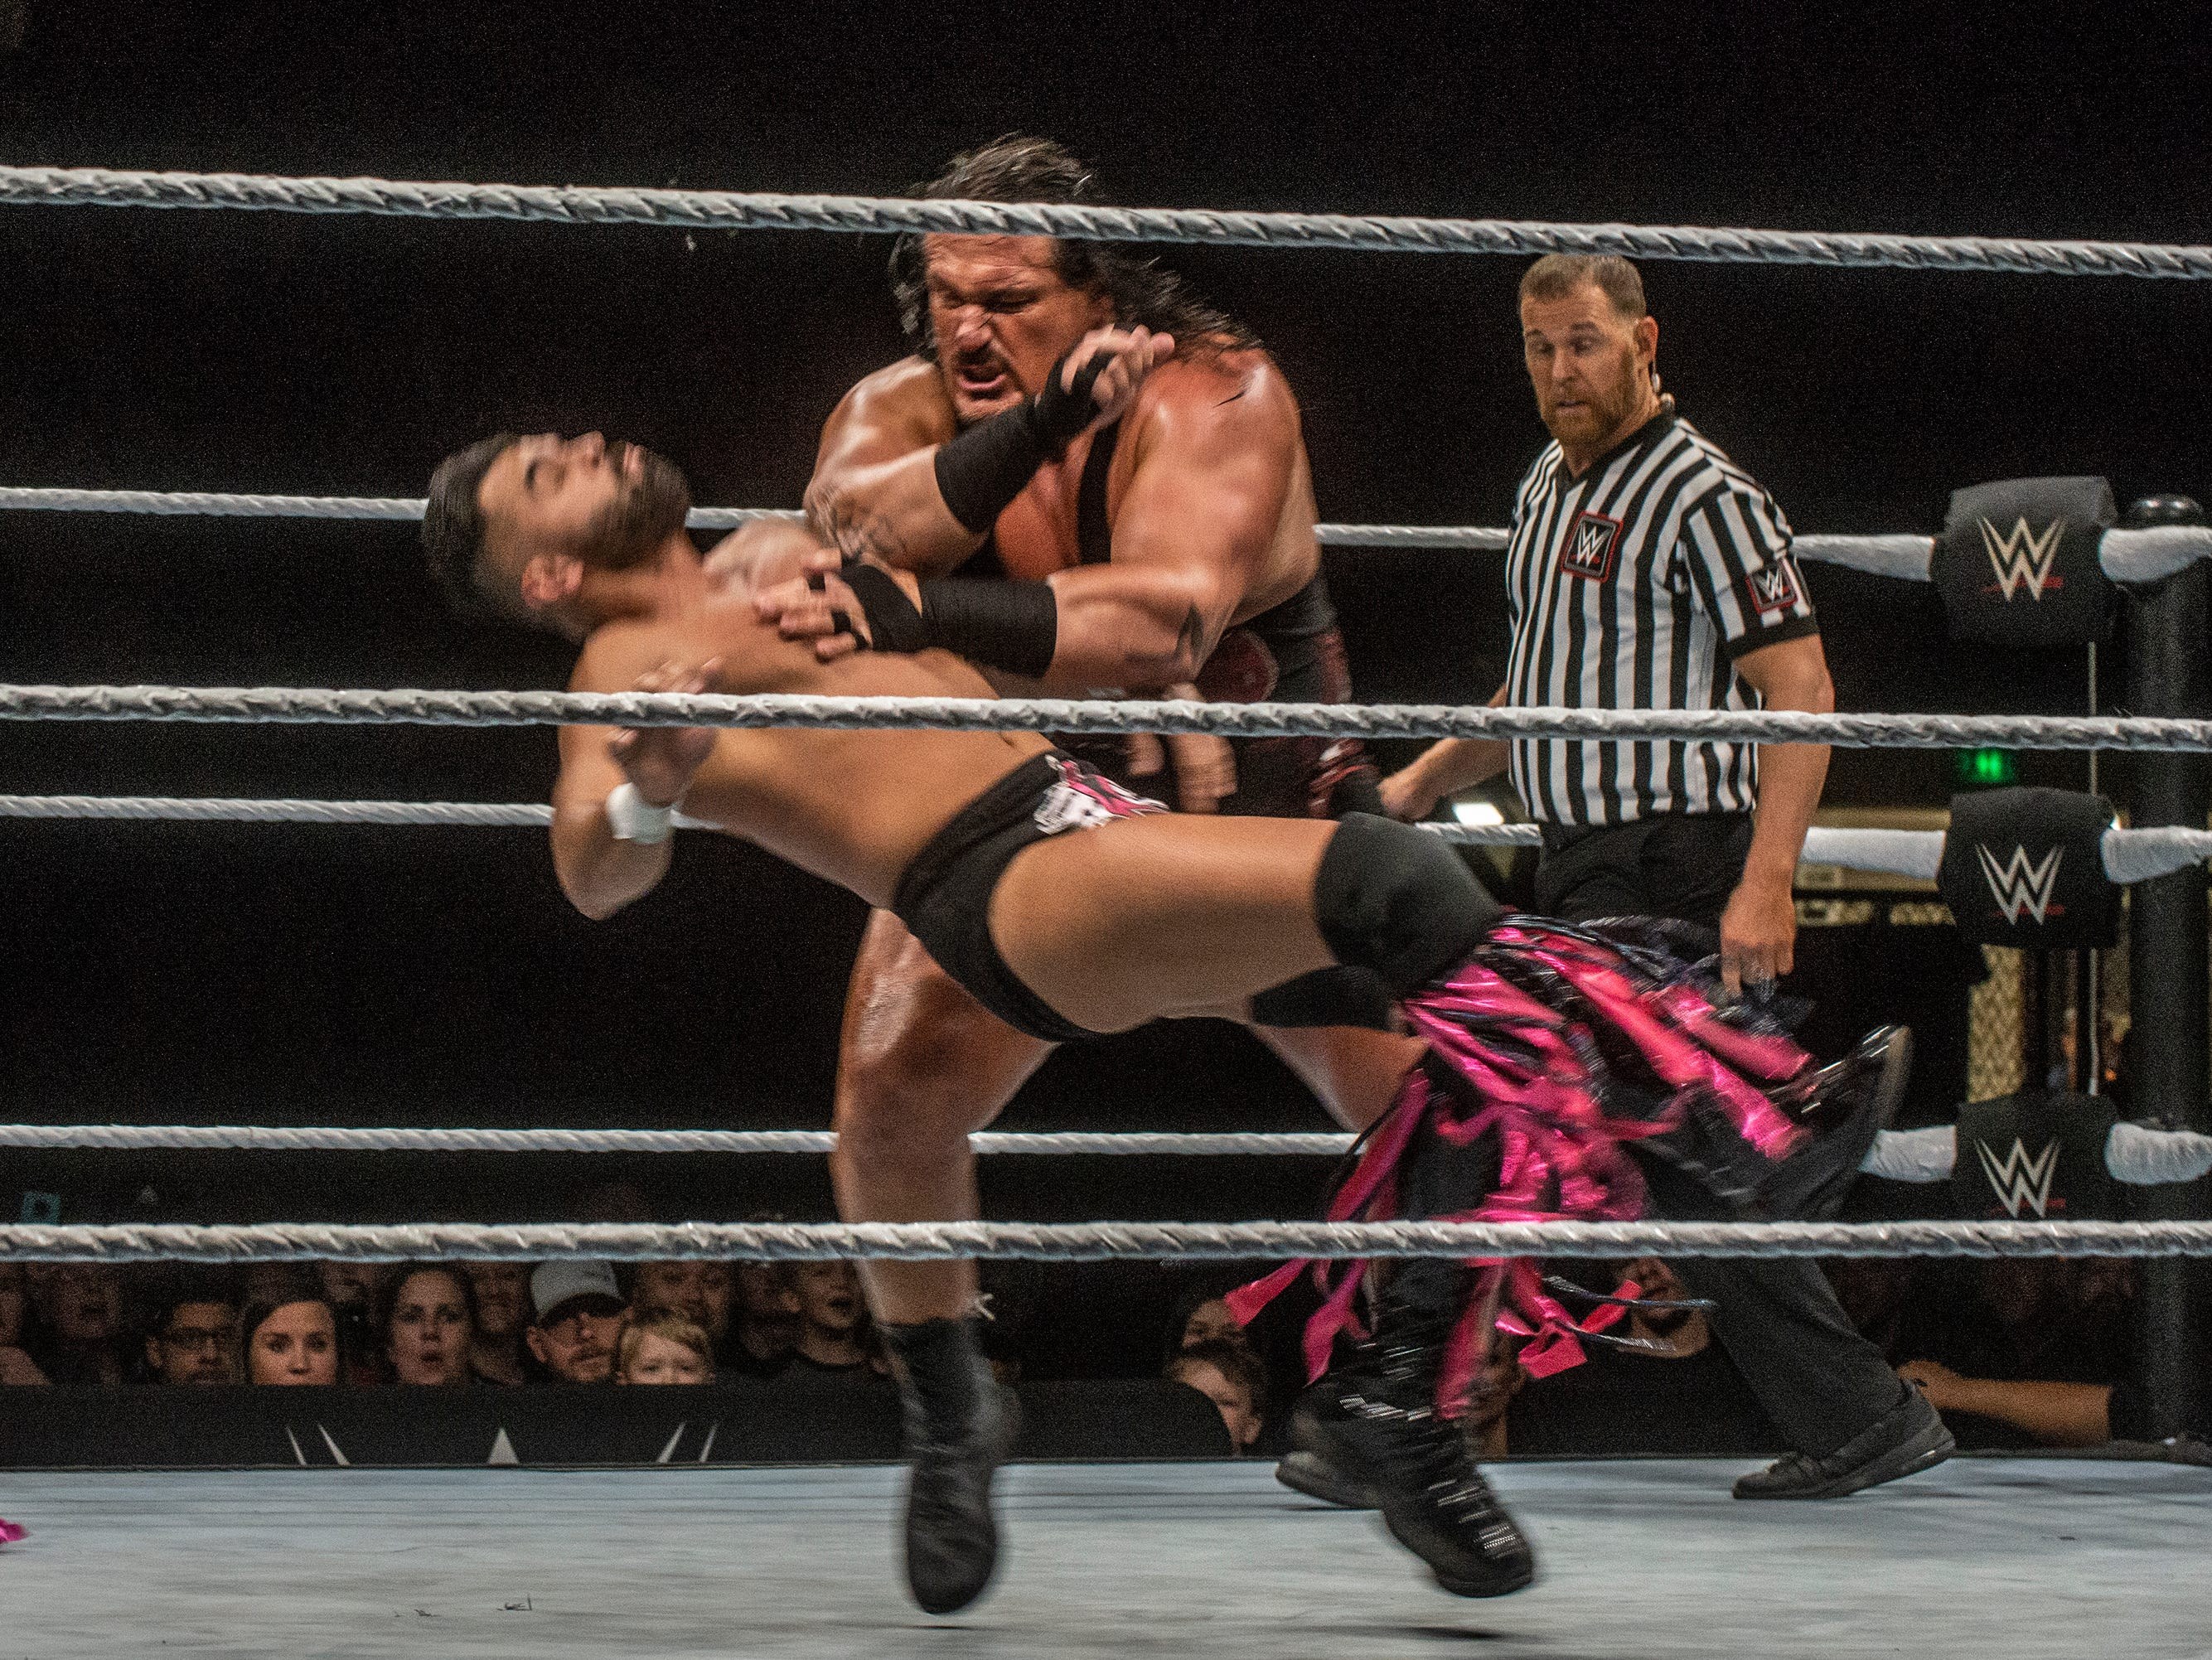 Rhyno tosses one of the Singh Brothers. The Singh Brothers and Jinder Mahal in a six man tag team match against Titus OÕNeil, Heath Slater and Rhyno. WWE Live Road to Wrestlemania came to Garrett Coliseum in Montgomery on Sunday, Feb. 24, 2019.